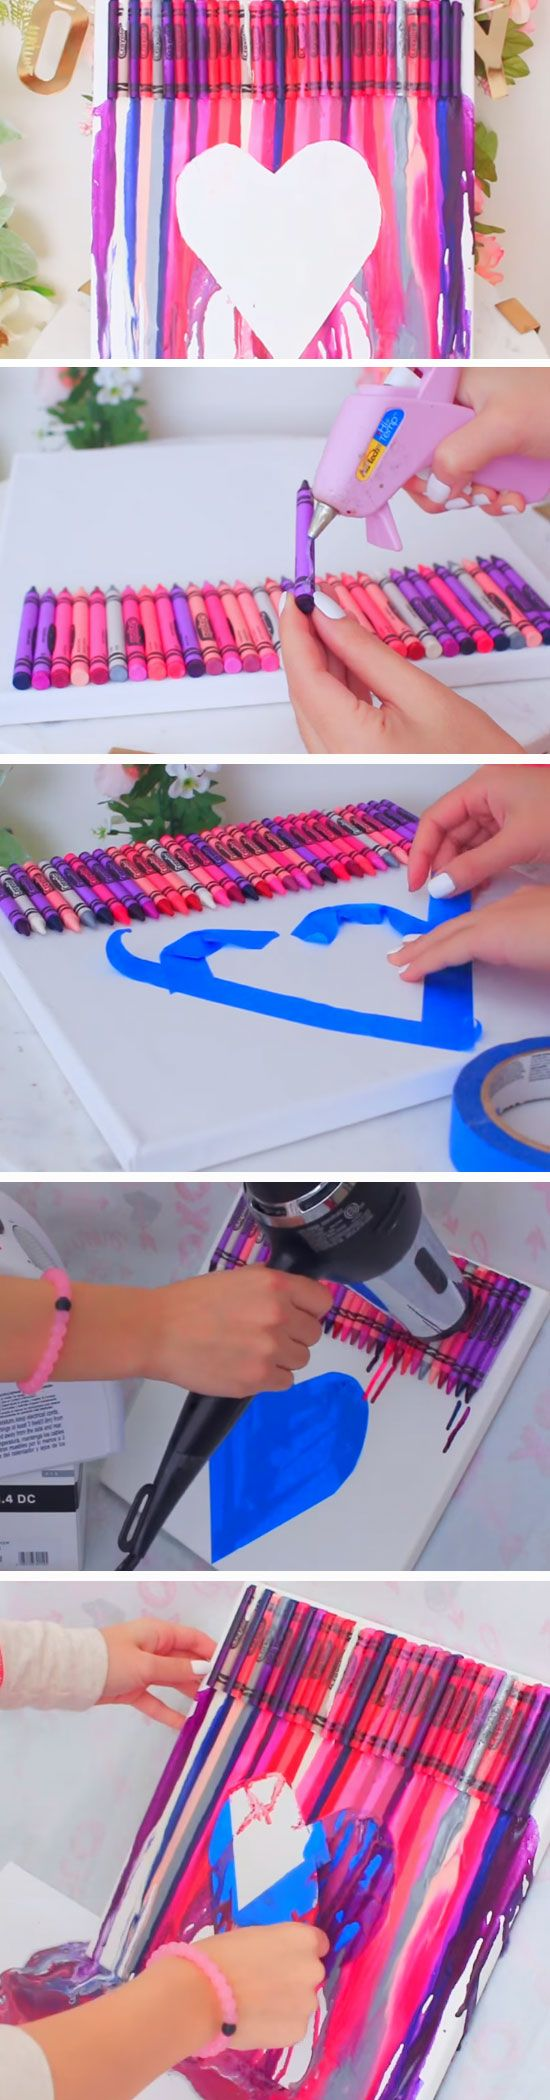 32 DIY Valentines Crafts For Boyfriend